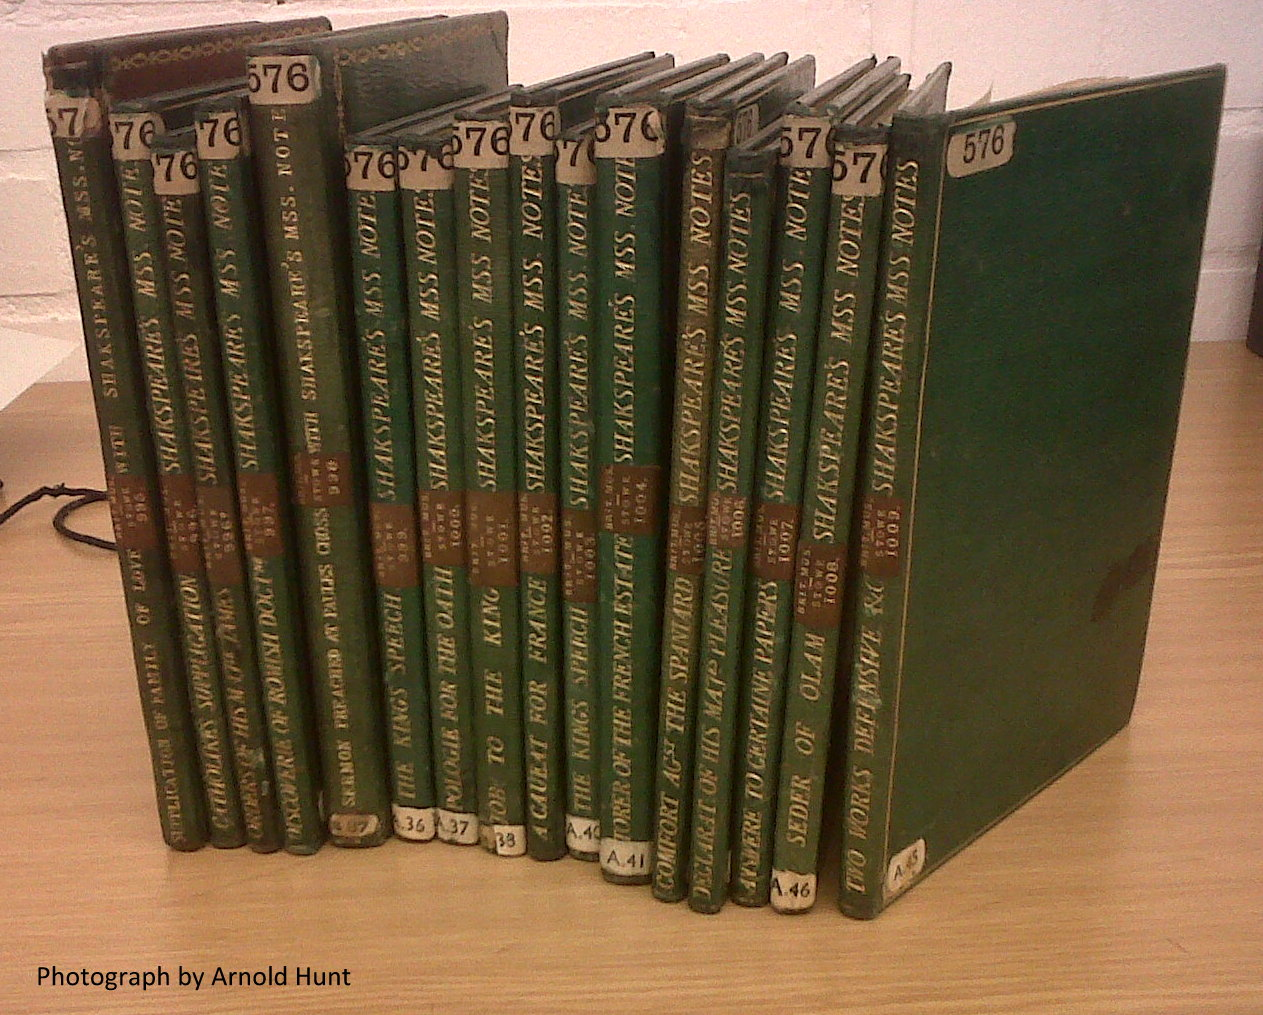 Ireland-Shakespeare books at the BL